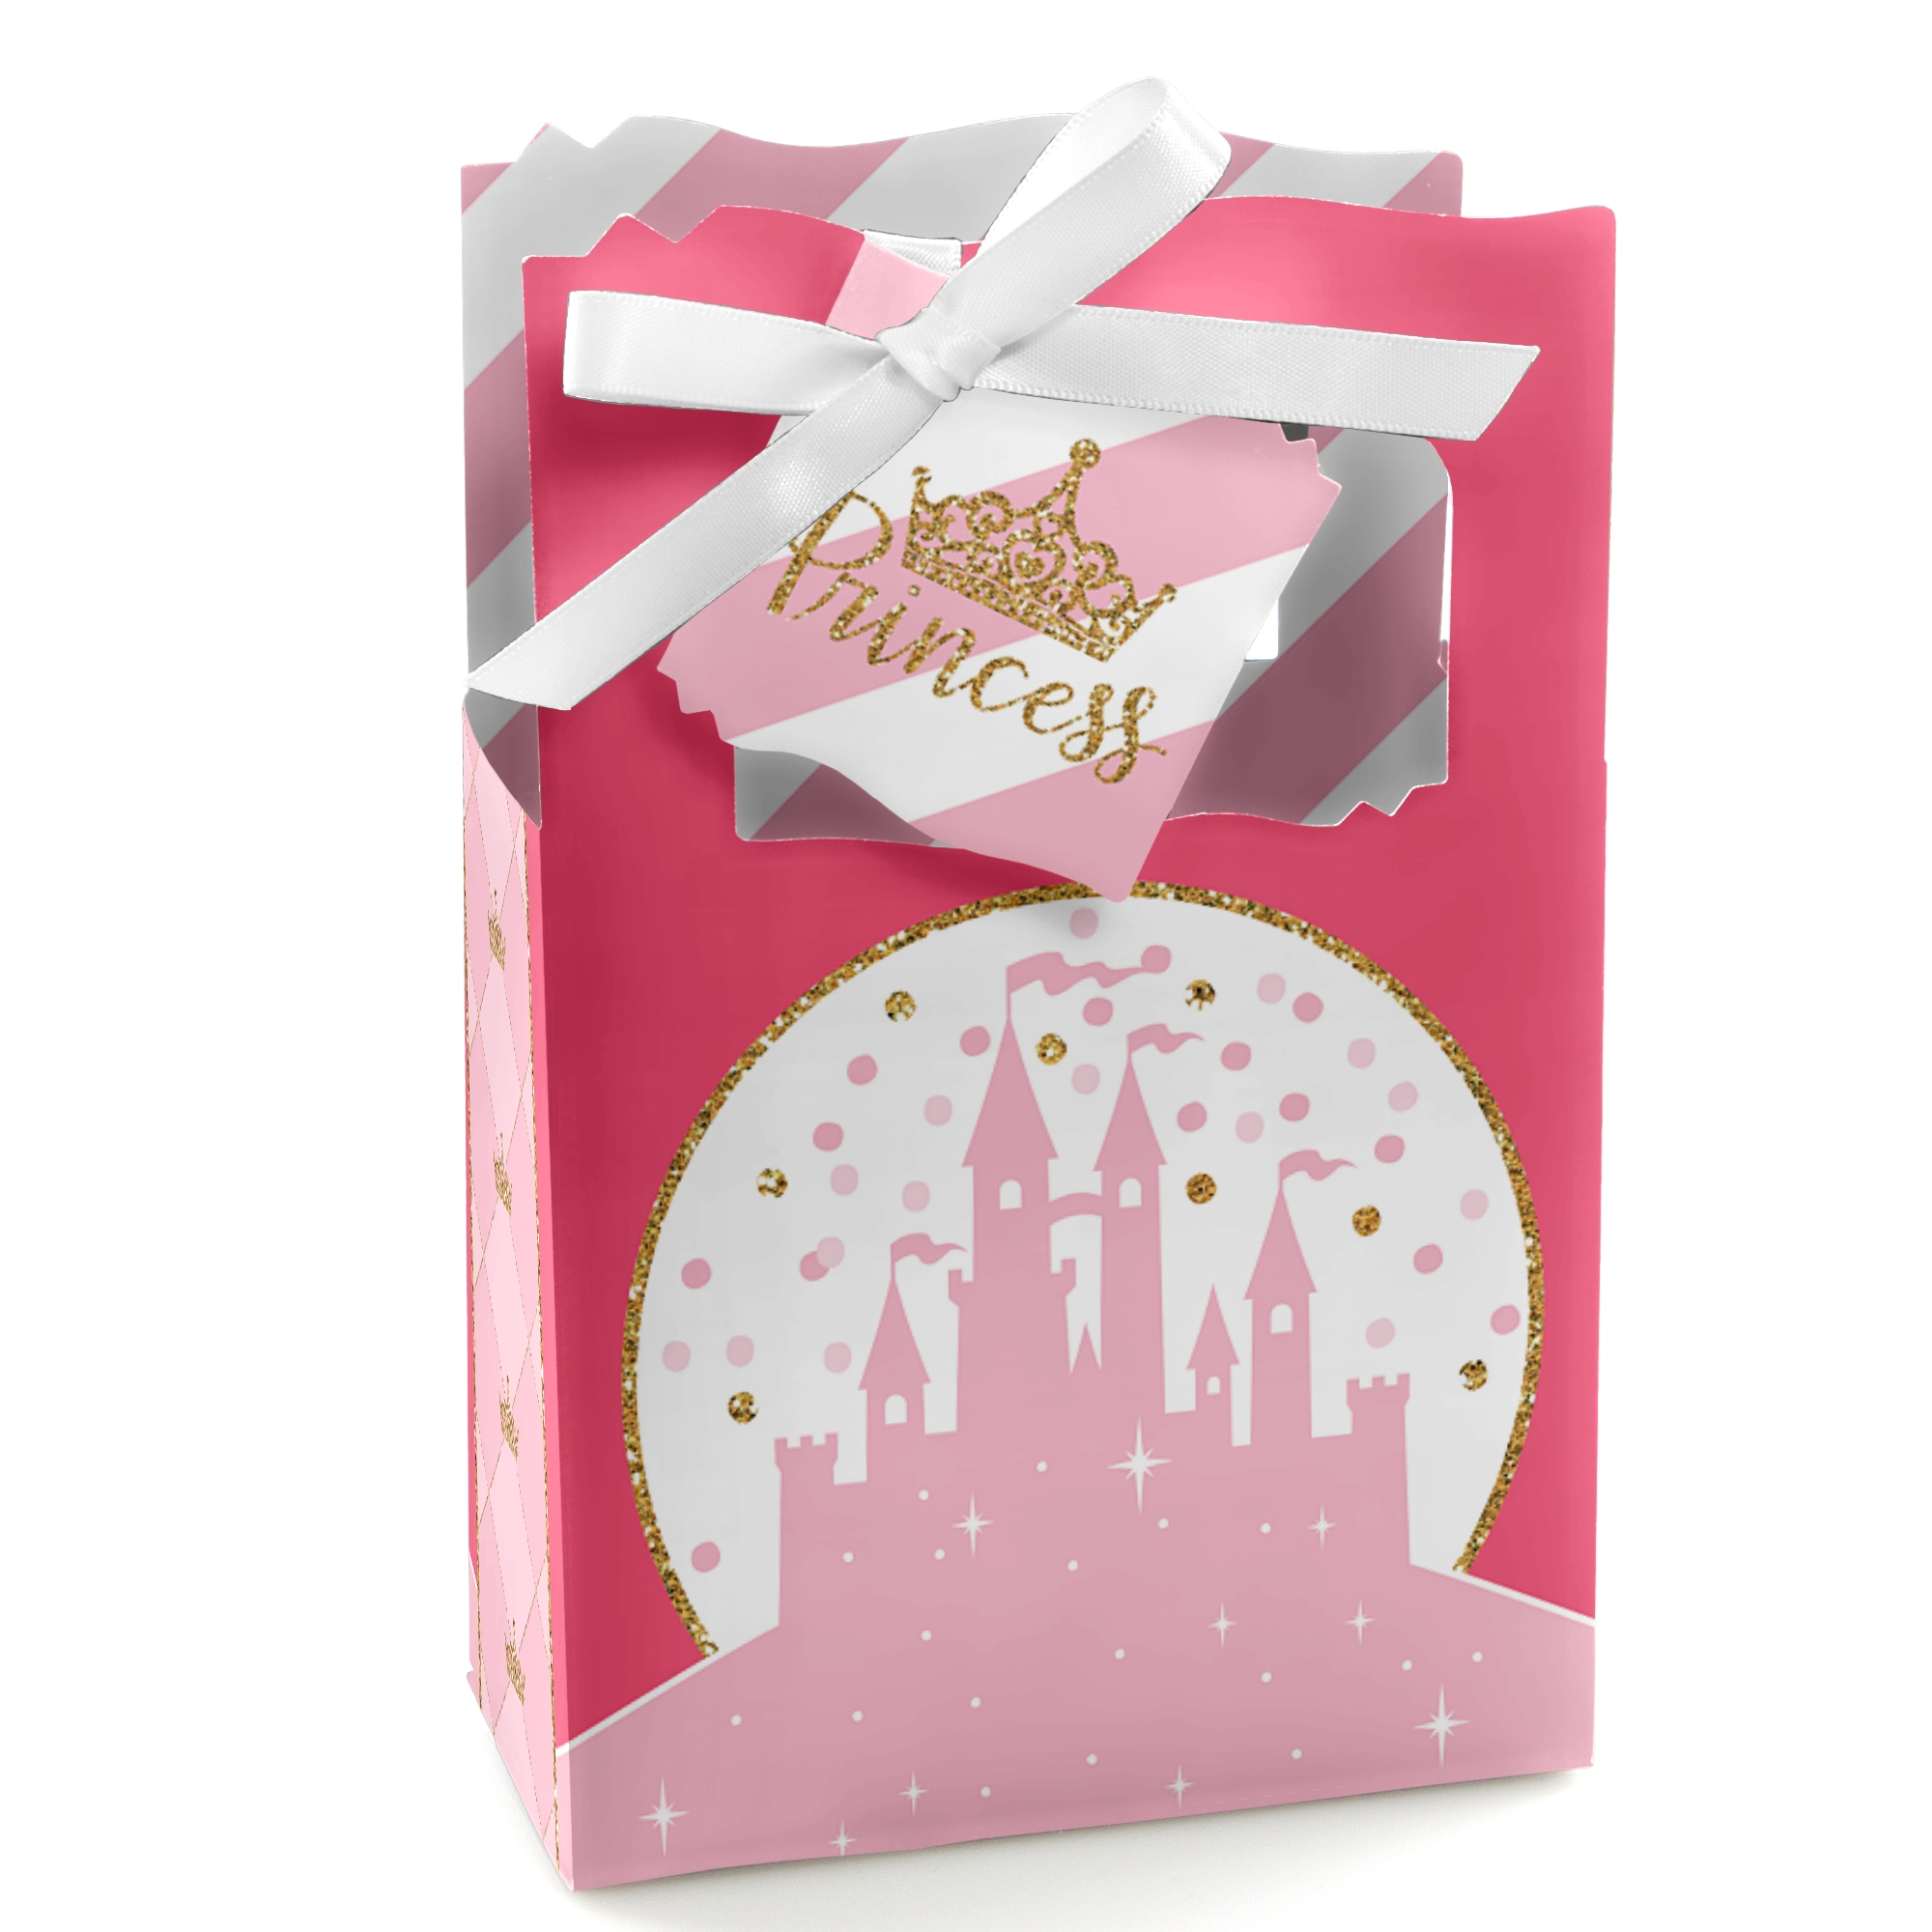 Little Princess Crown - Pink and Gold Princess Baby Shower or Birthday Party Favor Boxes - Set of 12